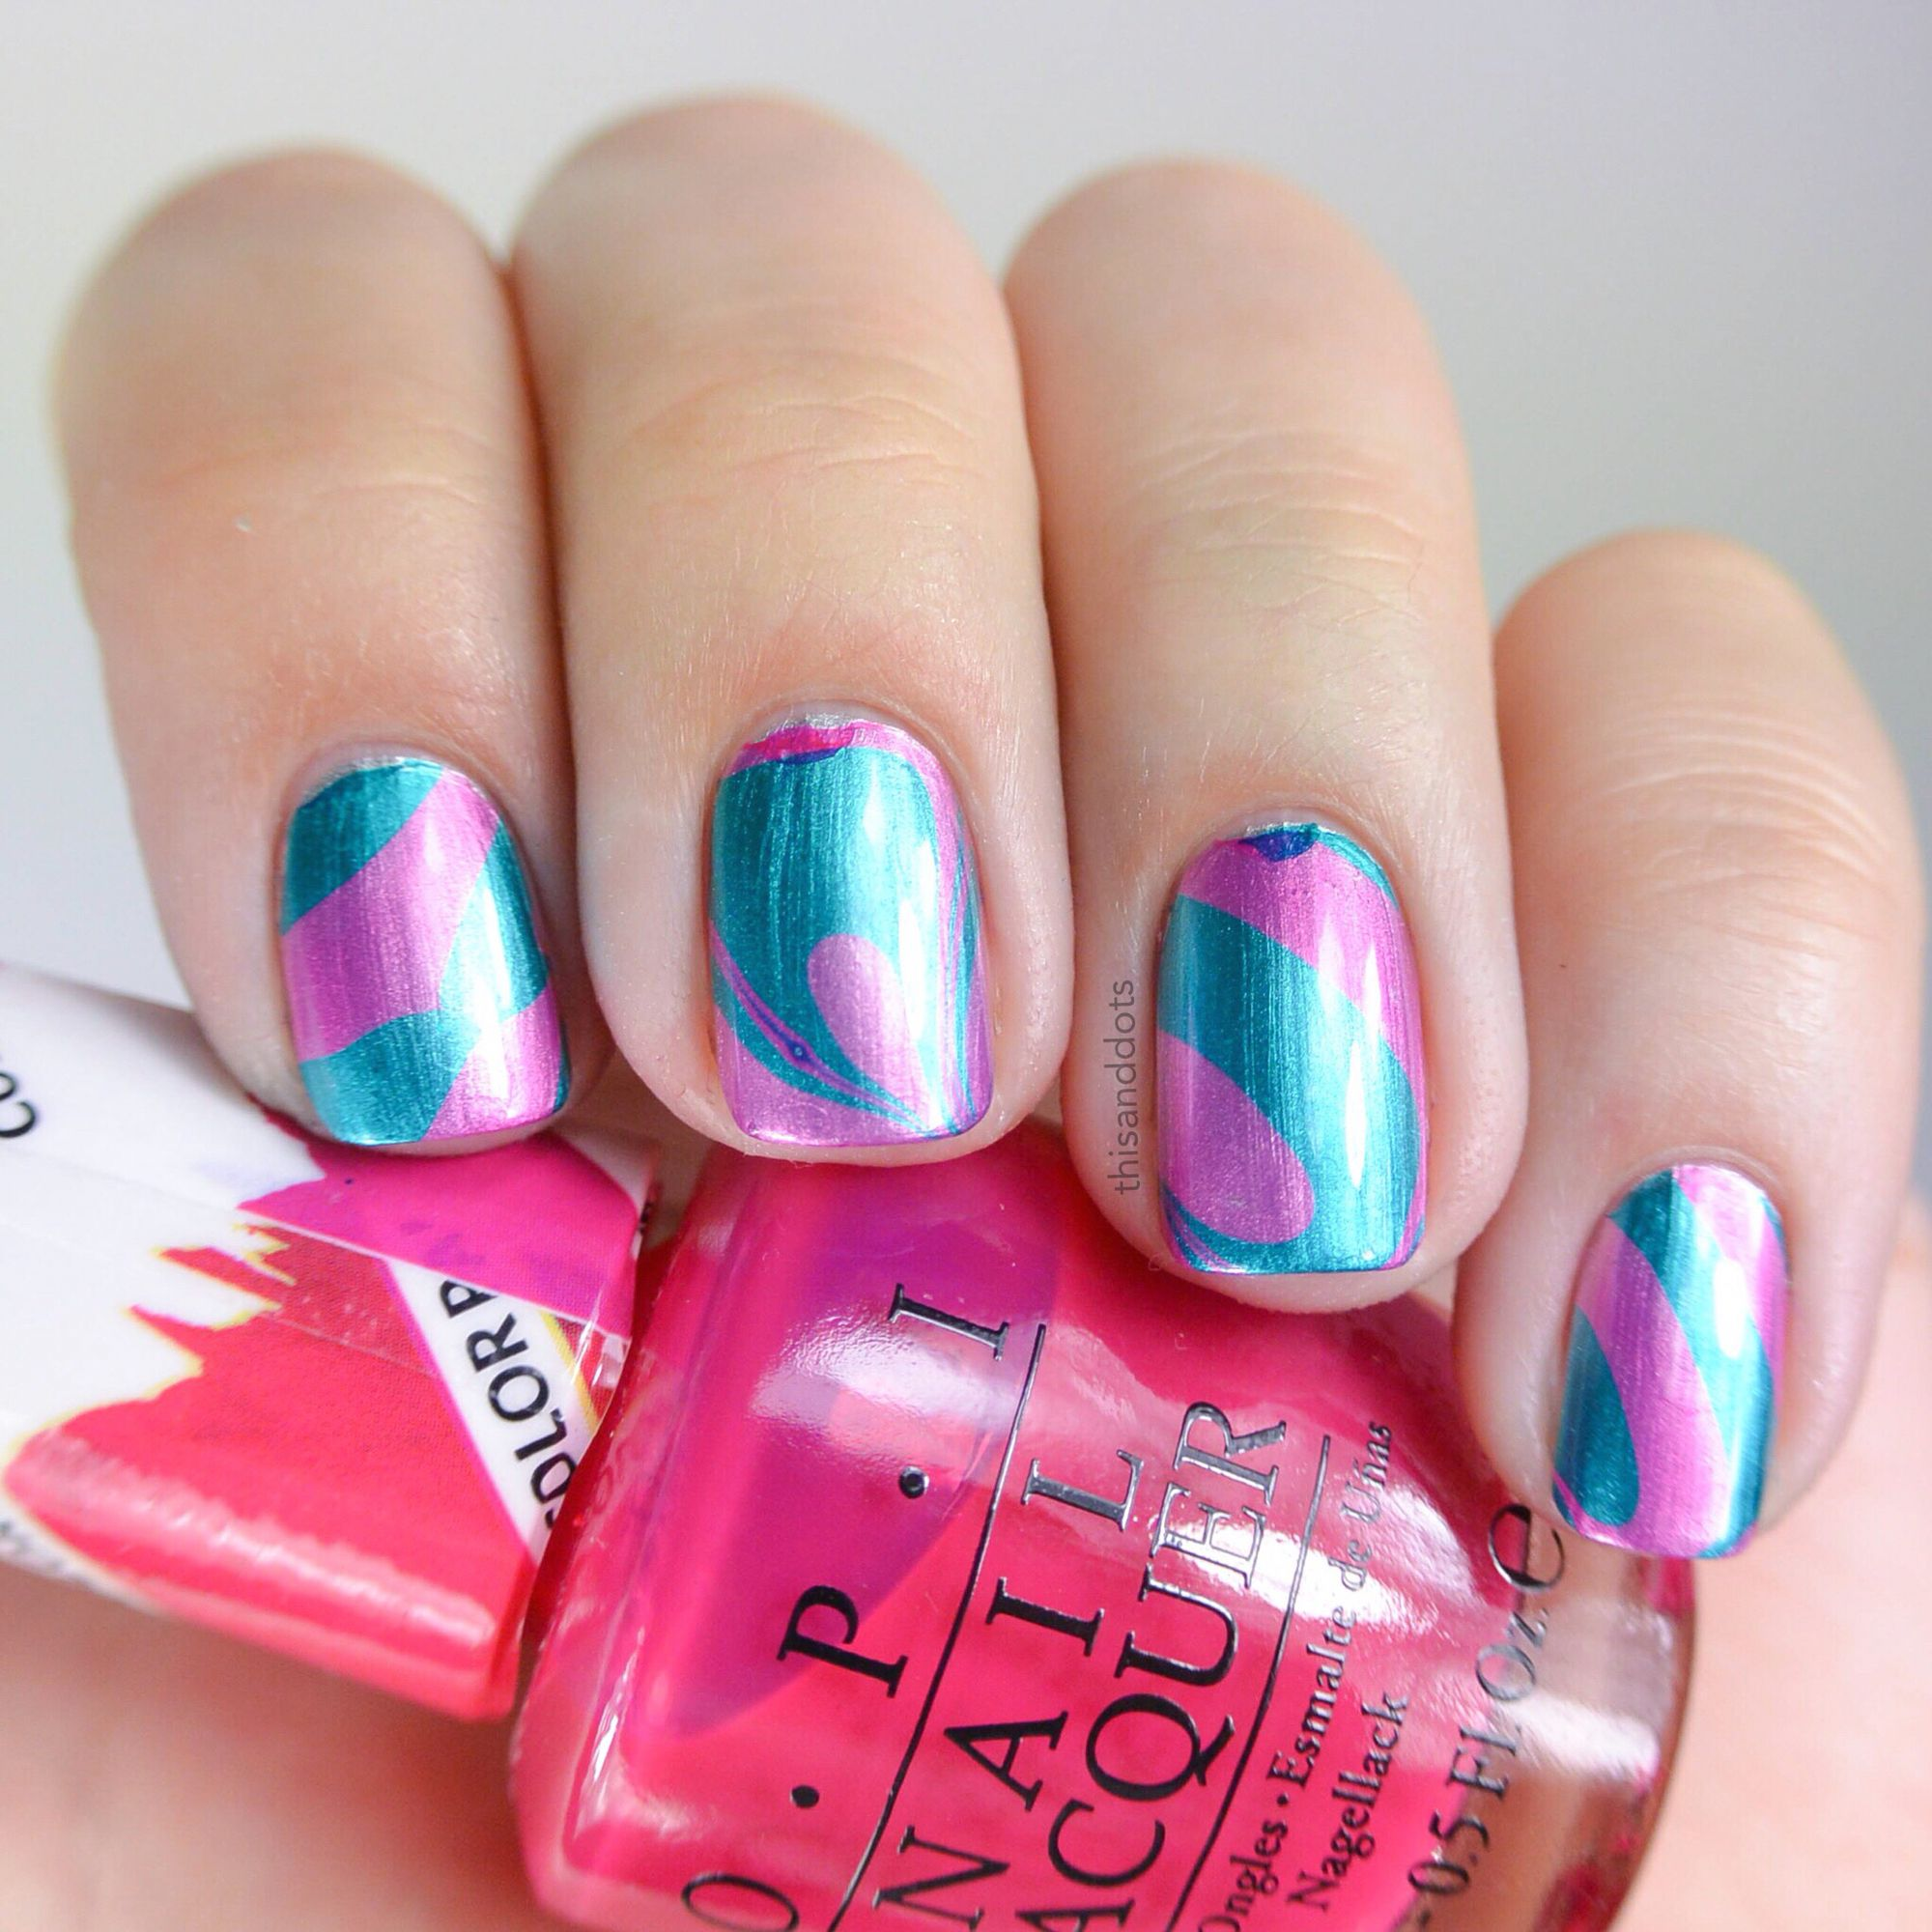 OPI - Pen & Pink - Turquoise Aesthetic over Silver Canvas